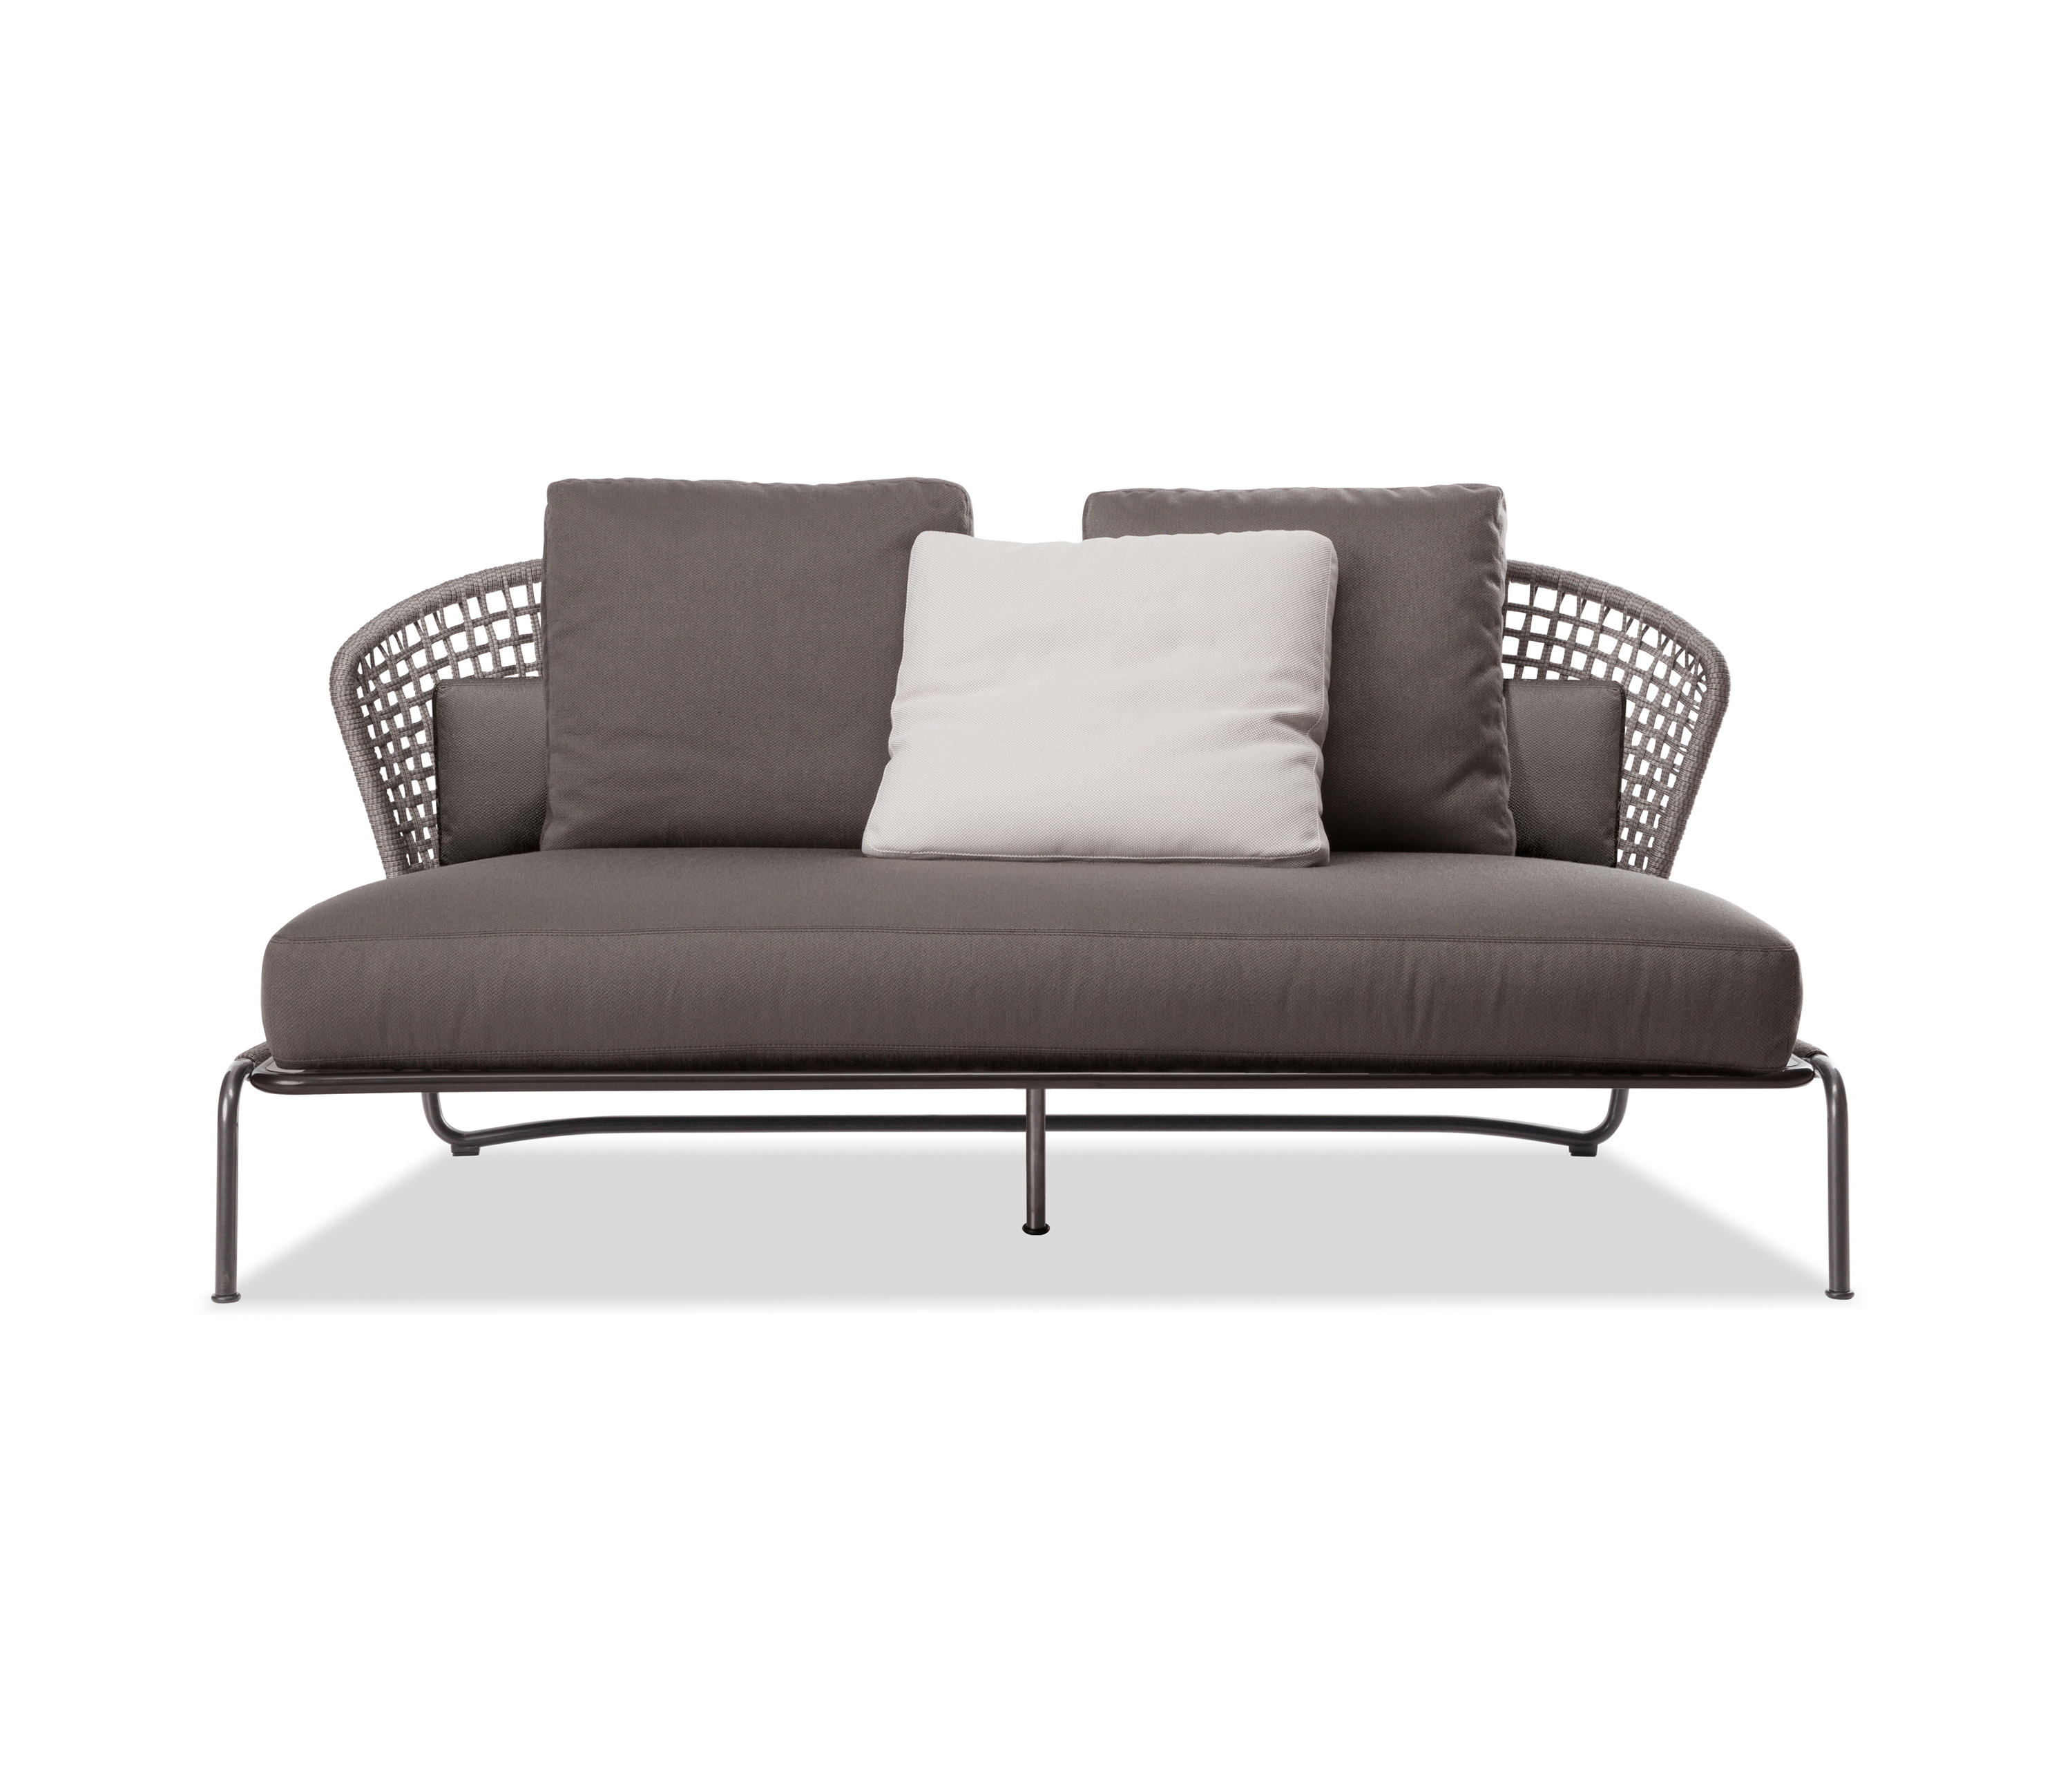 loveseat products black ikea catalog us kungs outdoor brown kungsholmen en